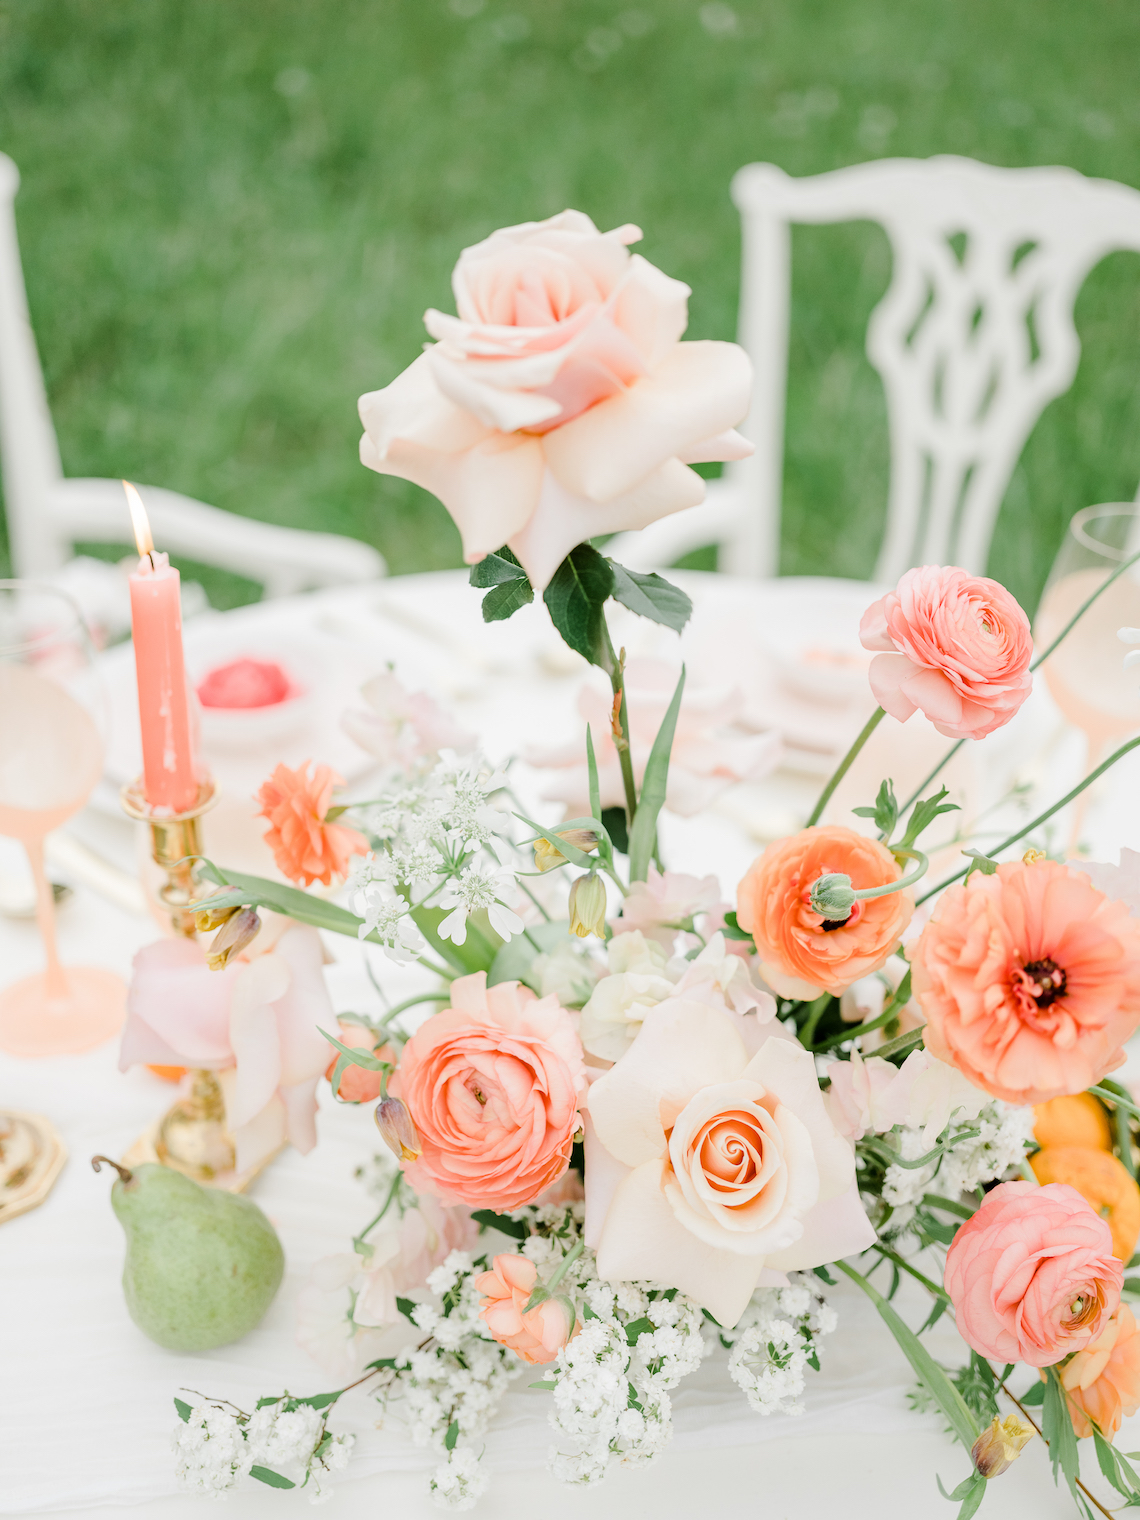 Whimsical Pantone Living Coral Colorful Meadow Wedding Inspiration – Kira Nicole Photography 26